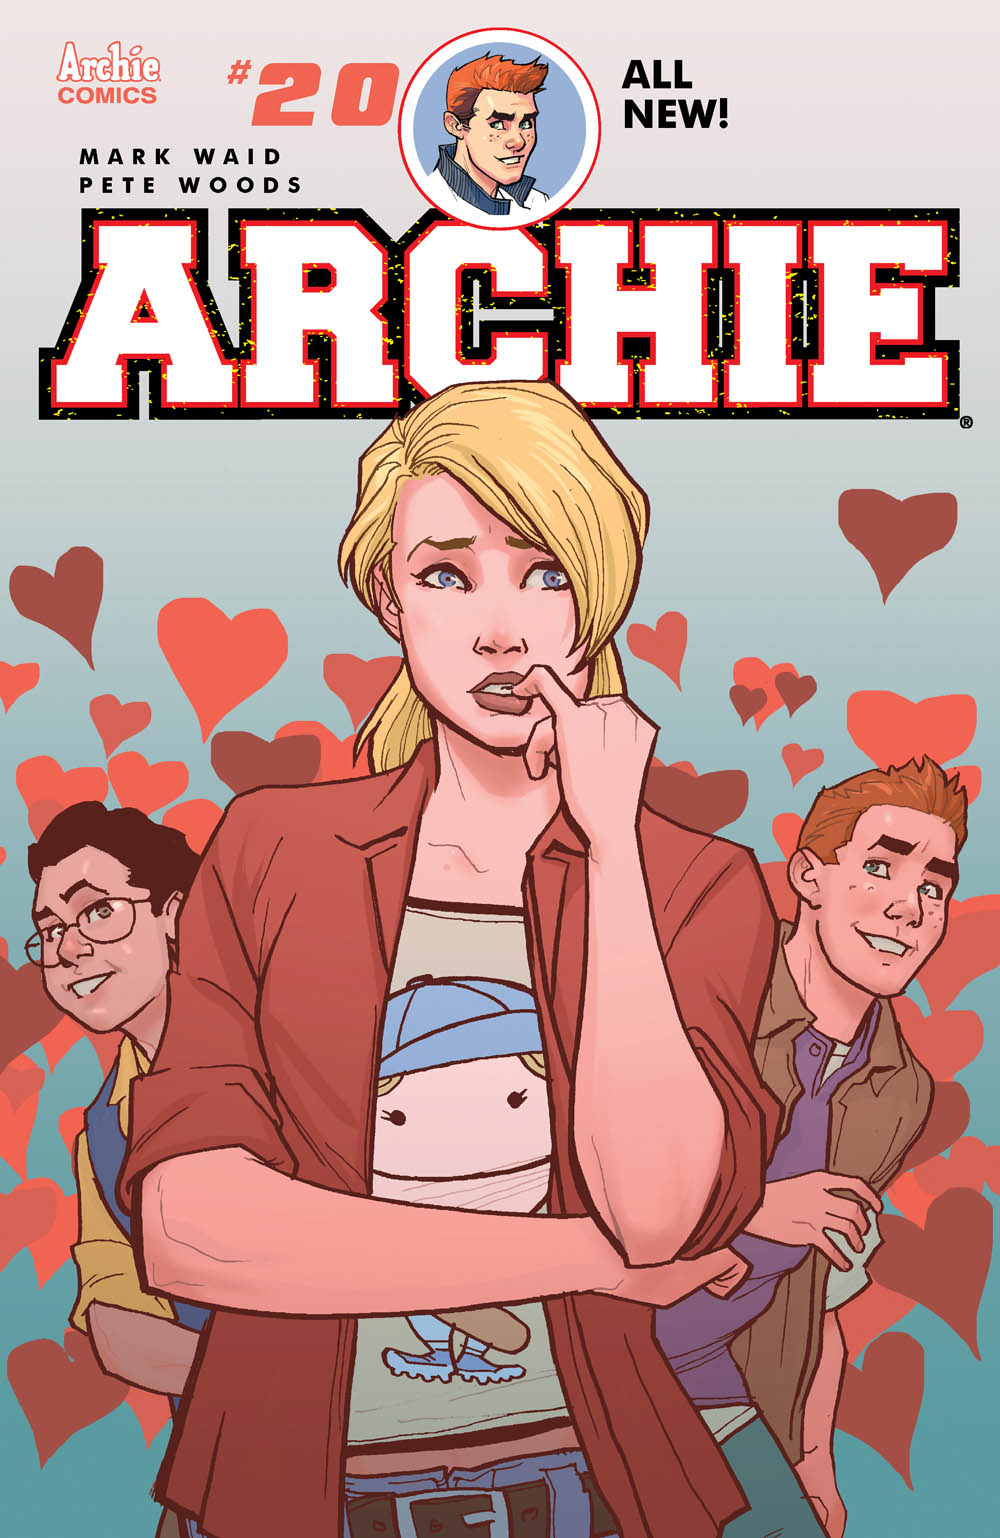 ... peek at the Archie Comics solicitations for May 2017! - Archie Comics: http://archiecomics.com/may2017solicits/